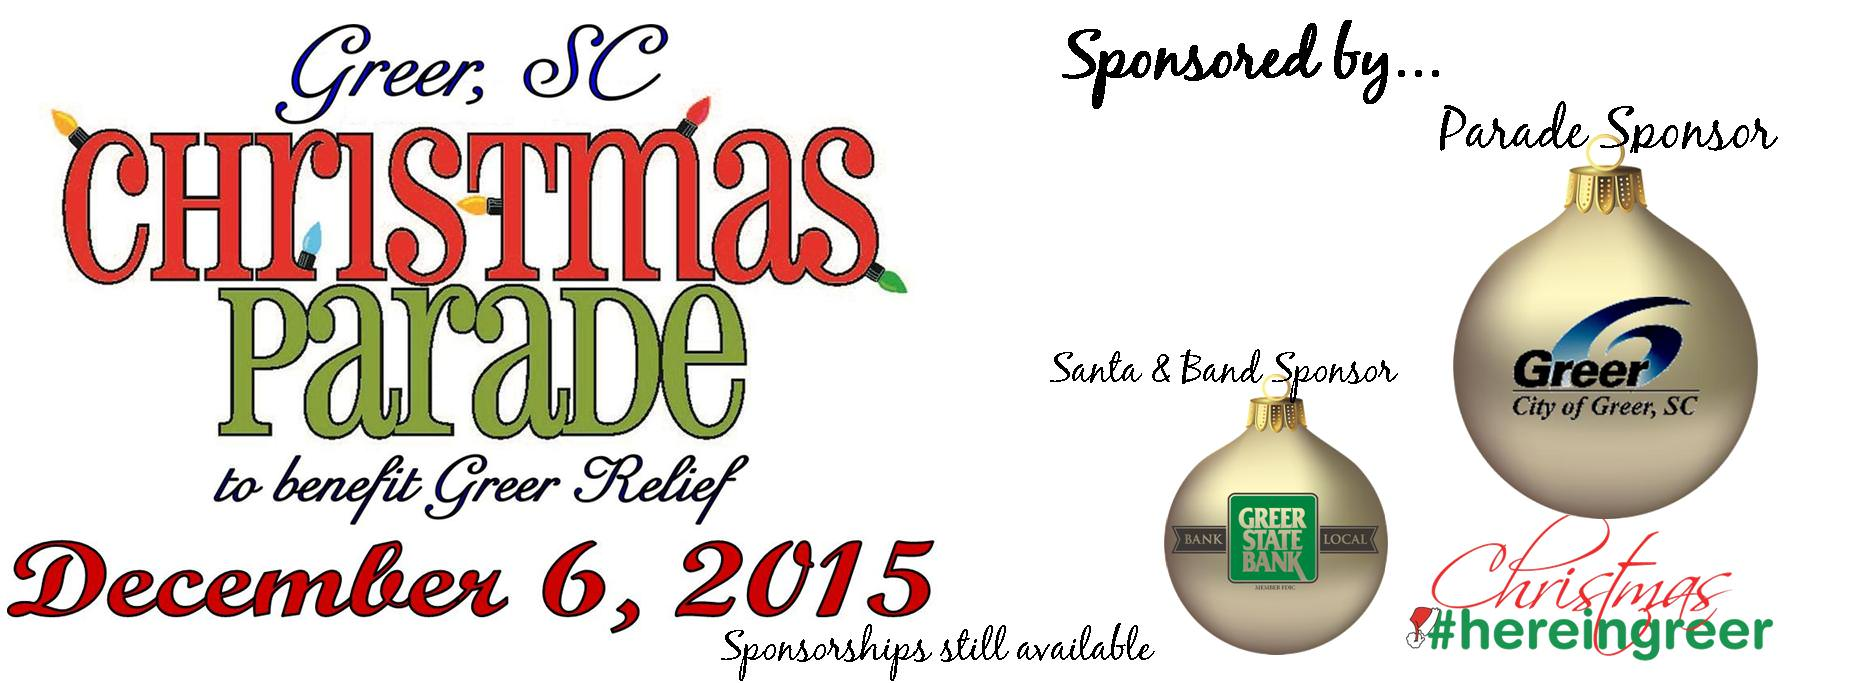 2015 Greer Christmas Parade: An International Christmas \